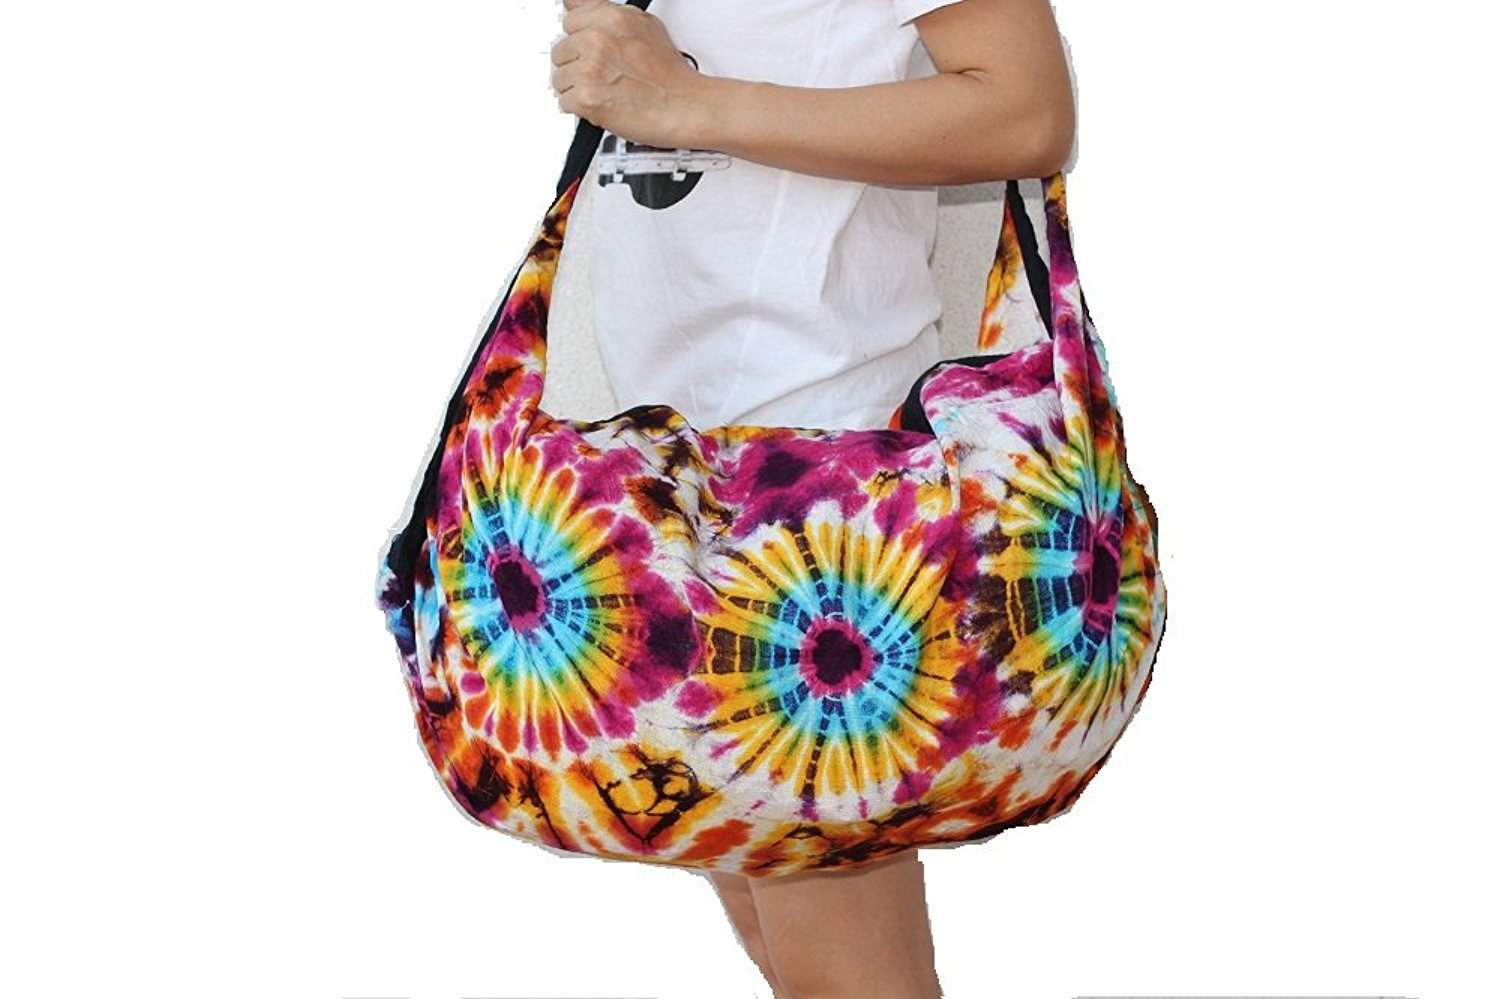 Get Quotations Handmade Women S Shoulder Sling Large Multi Color Tie Dye Bag Thai Hippie Hobo